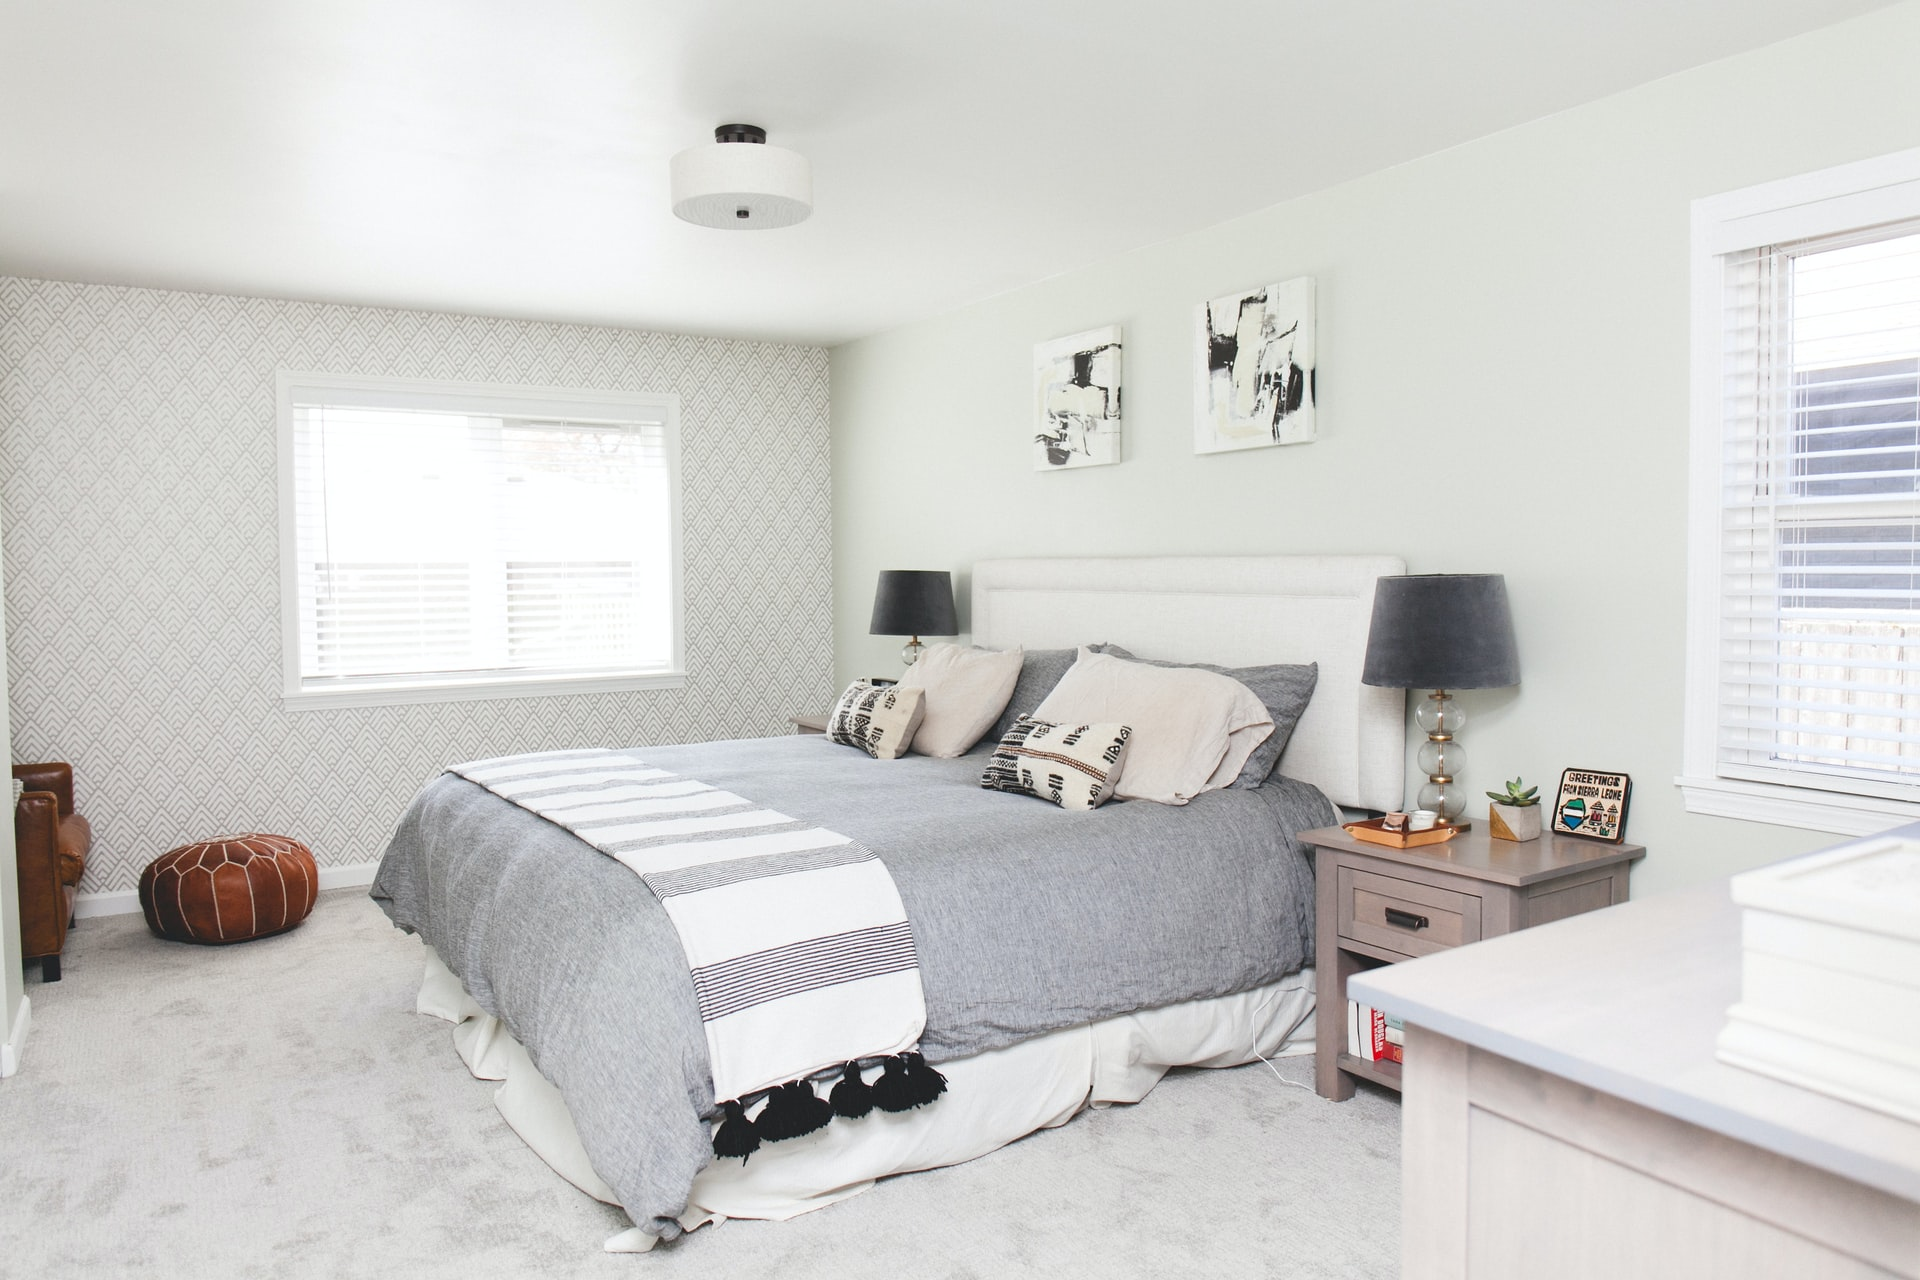 What You Need to Know Before Buying Bed Sheets